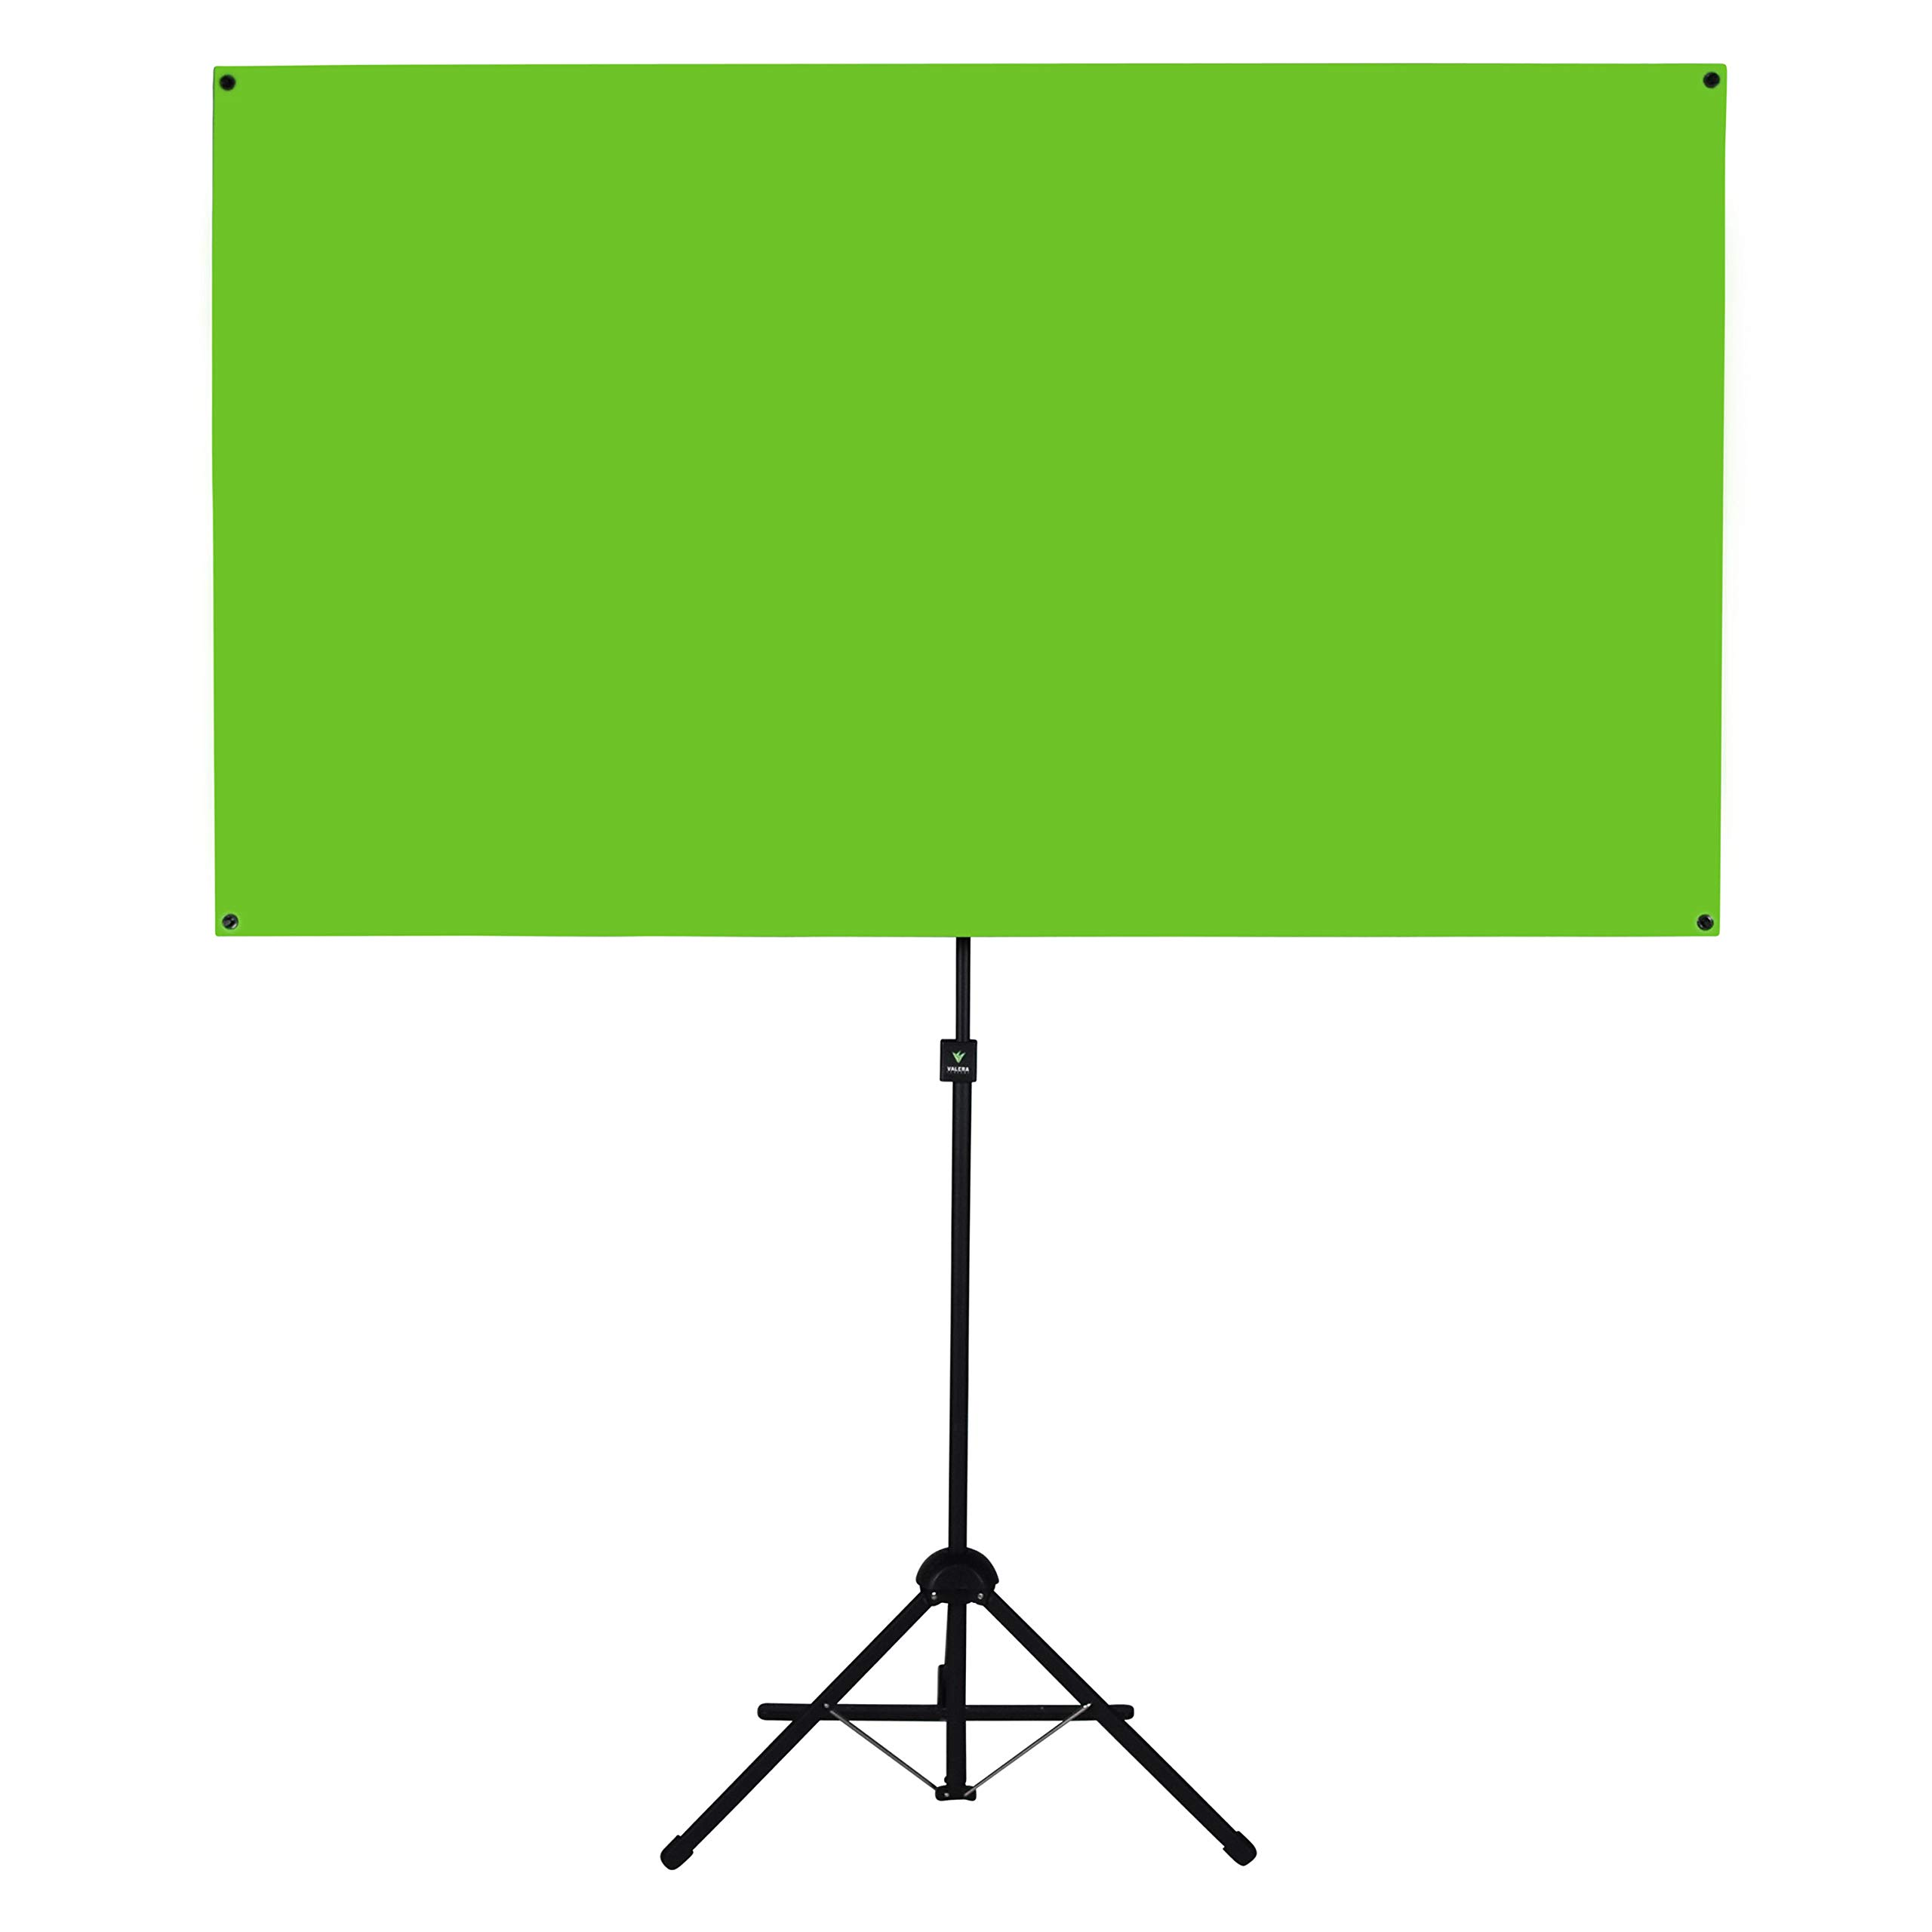 Valera Explorer 70 Inch Portable Green Screen for Streaming and Videos - Mounts on Tripod and Wall | Only 8 lbs | 2 min Setup | 16:9 Format | ChromaBoost Fabric with High Vibrancy for Low Lighting